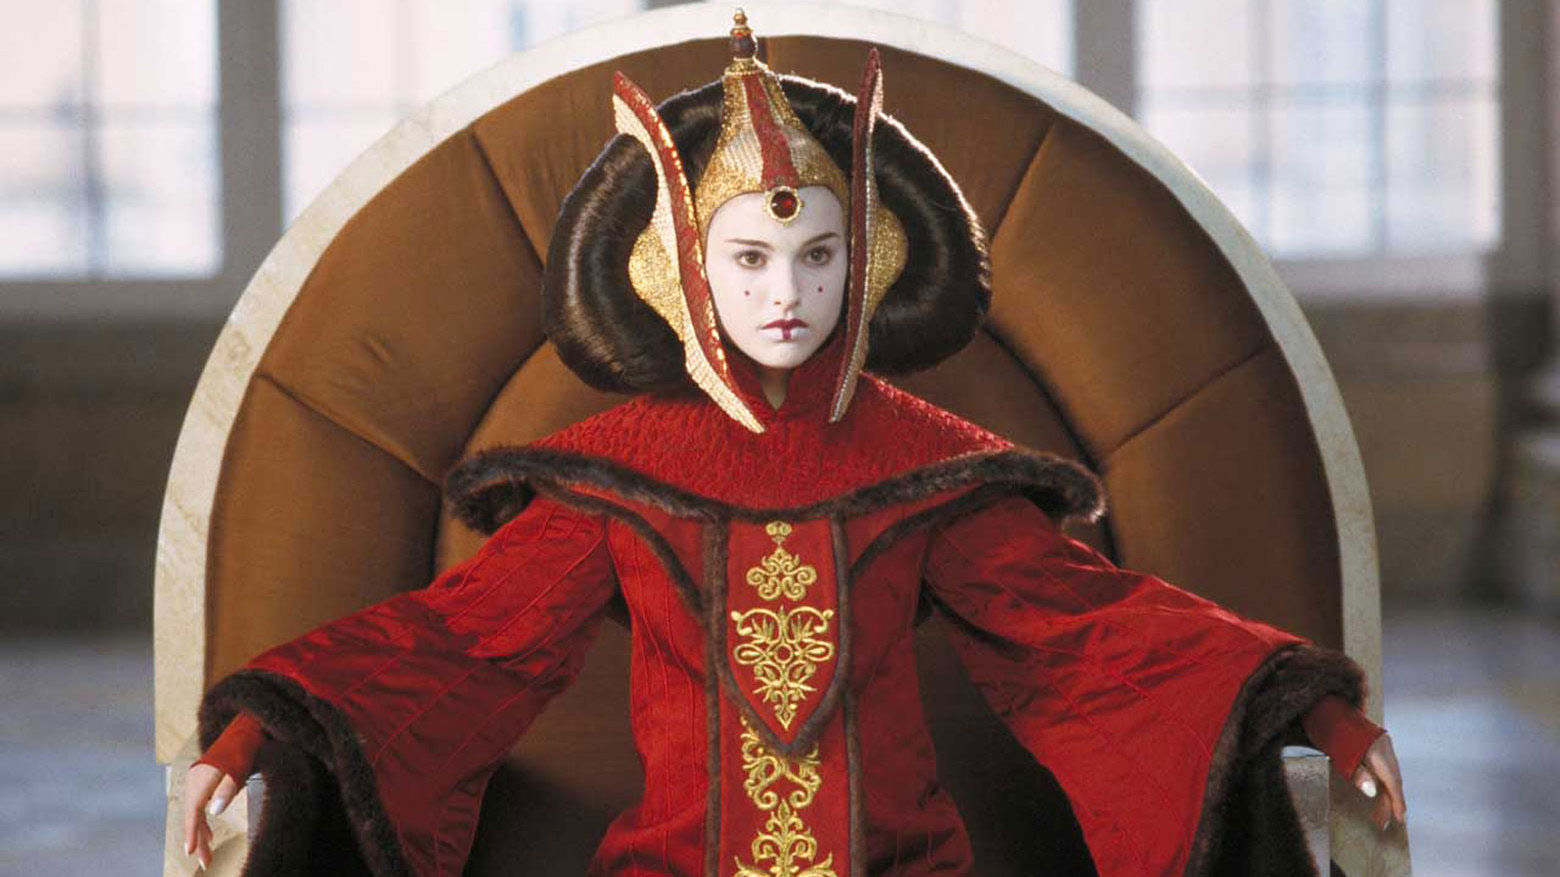 Natalie Portman as Queen Padme Amidala in Star Wars Episode I The Phantom Menace